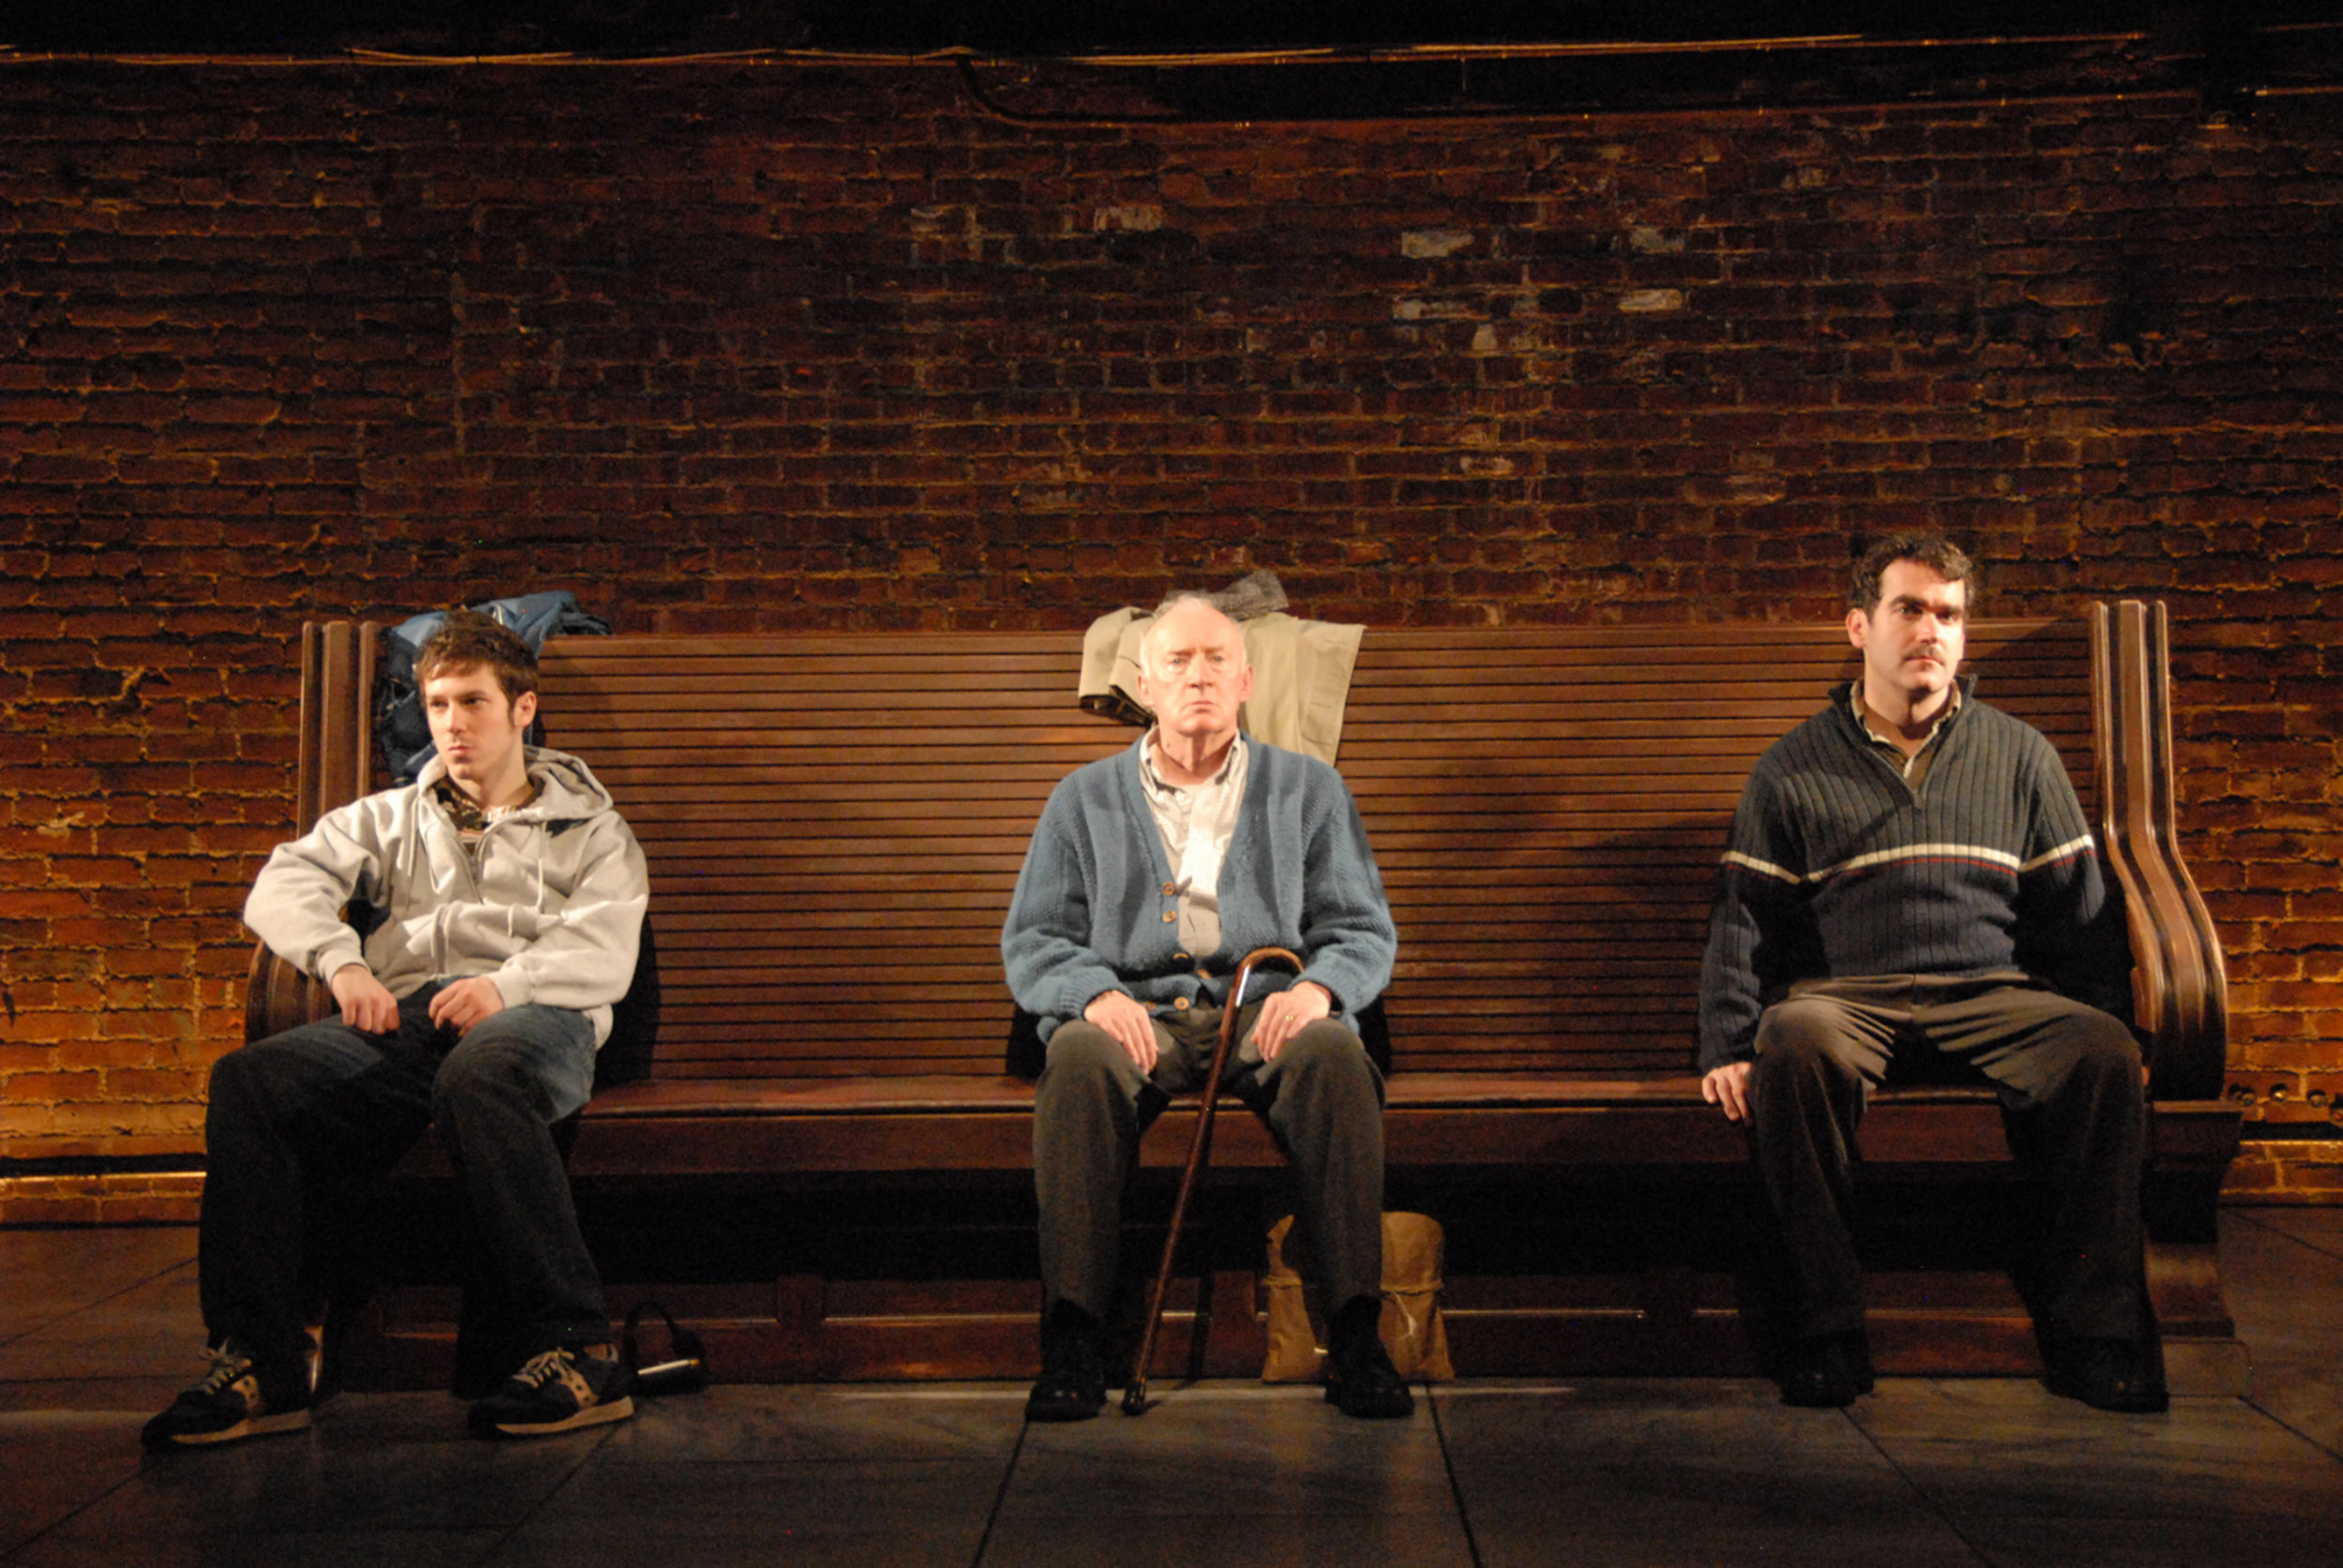 PORT AUTHORITY. THE ATLANTIC, 2008. JOHN GALLAGHER, JR., JIM NORTON, BRIAN D'ARCY JAMES. PHOTO: SARA KRULWICH.